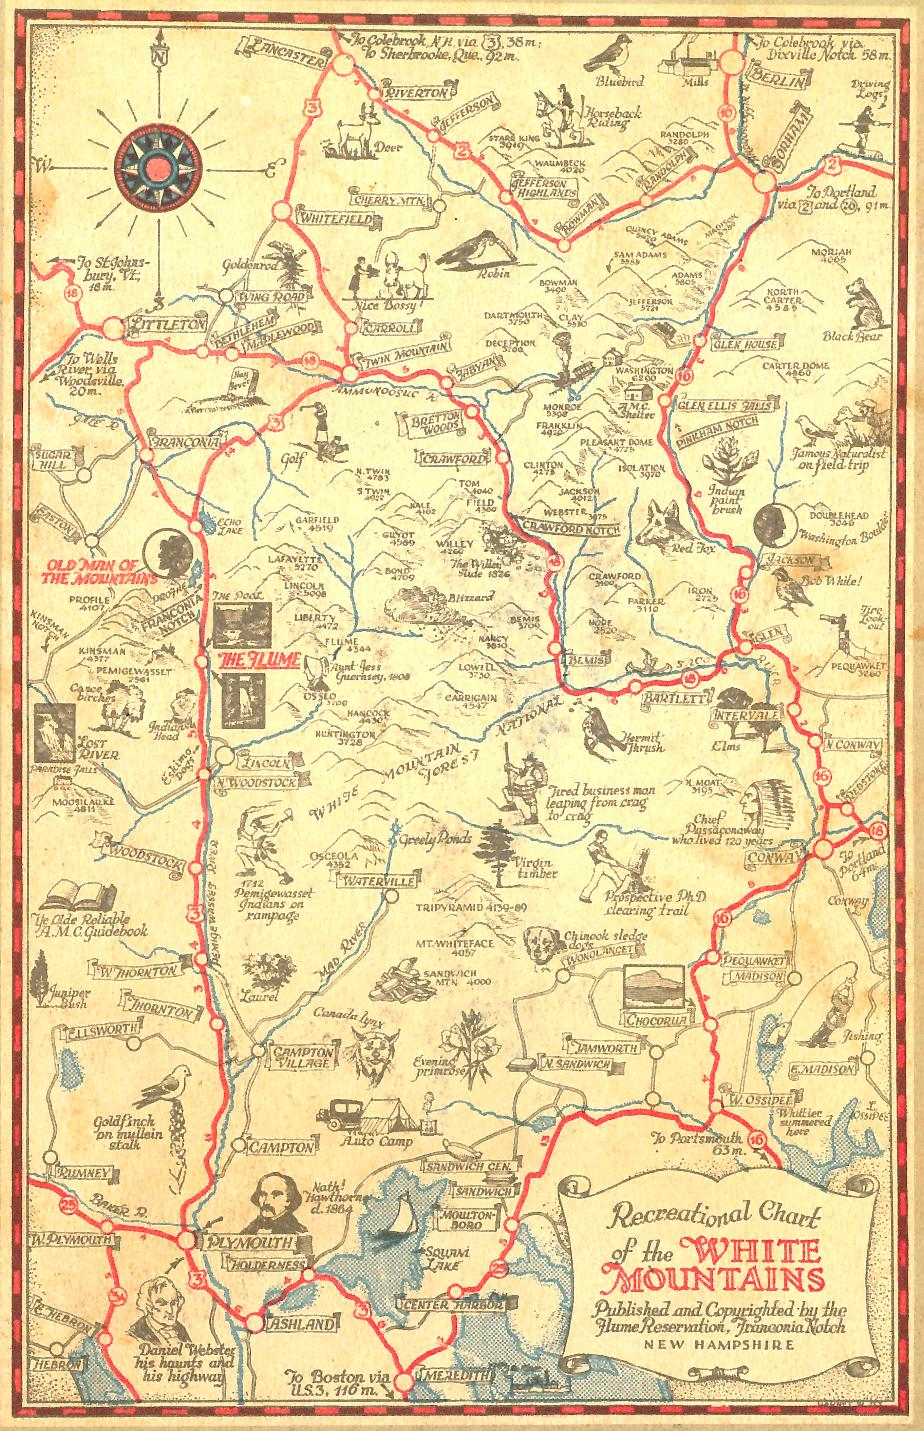 Recreational Map of the White Mountains - 1933